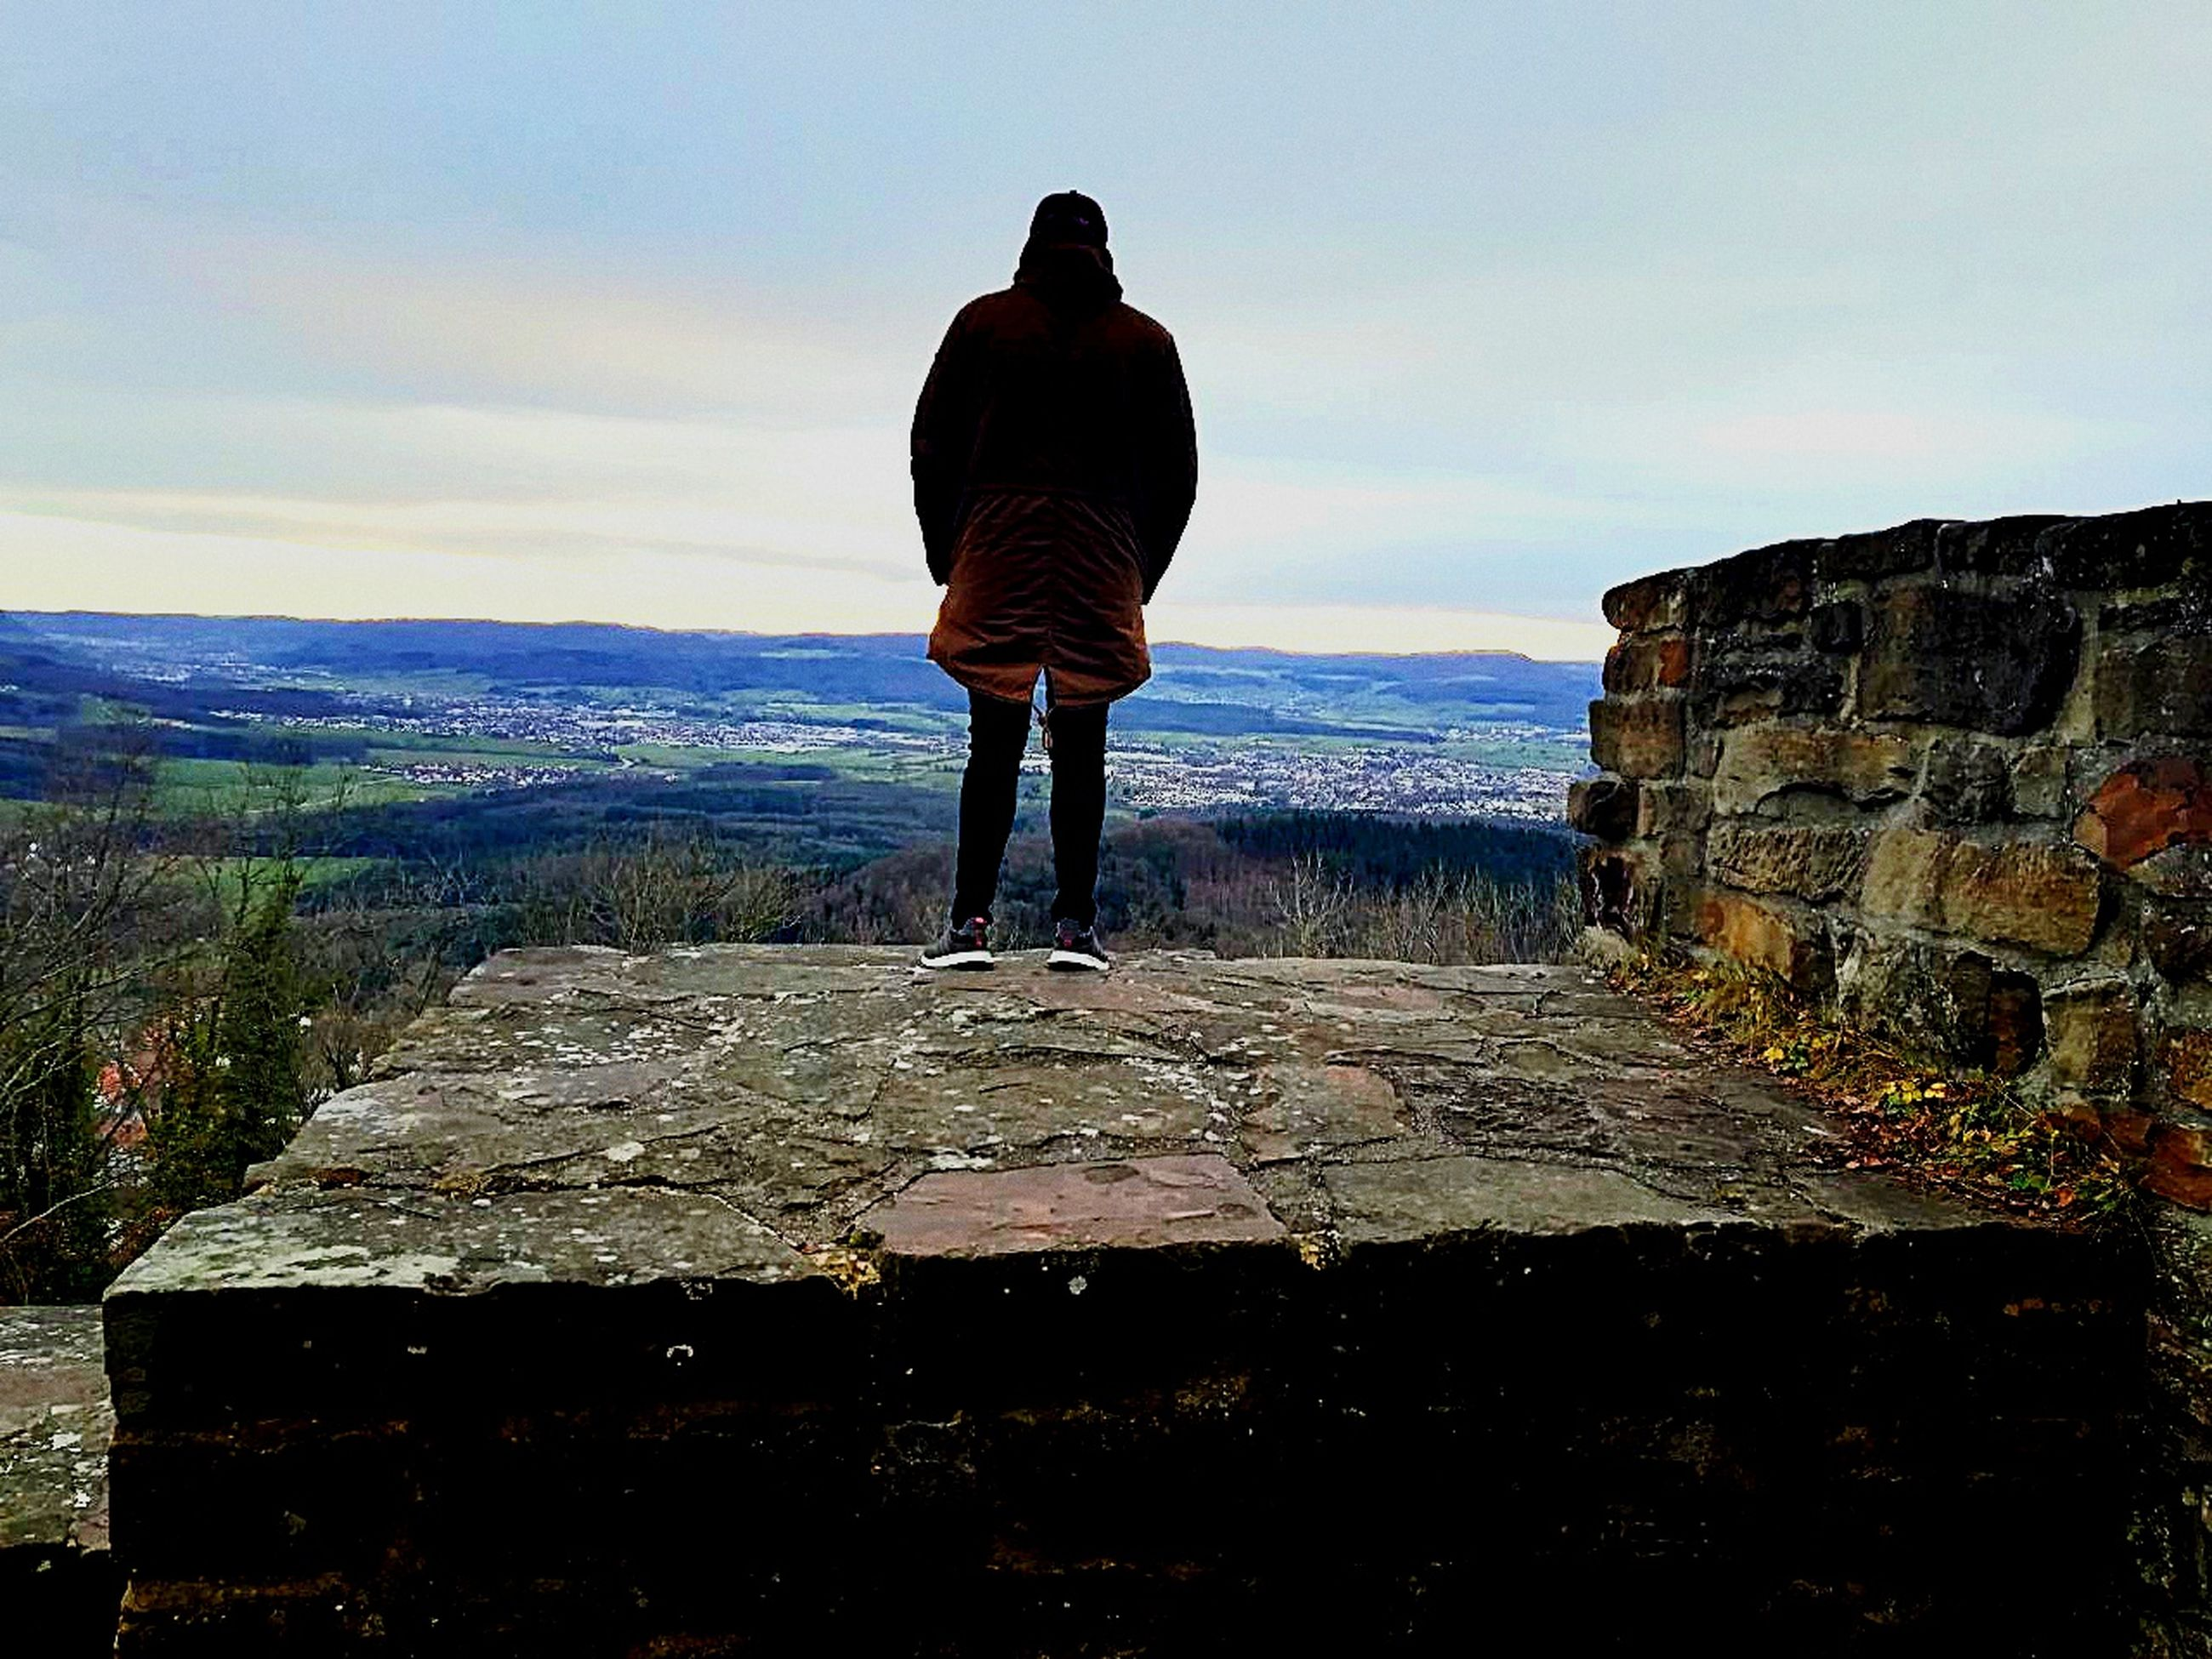 rear view, real people, one person, sky, men, full length, outdoors, standing, nature, leisure activity, mountain, day, one man only, landscape, scenics, beauty in nature, people